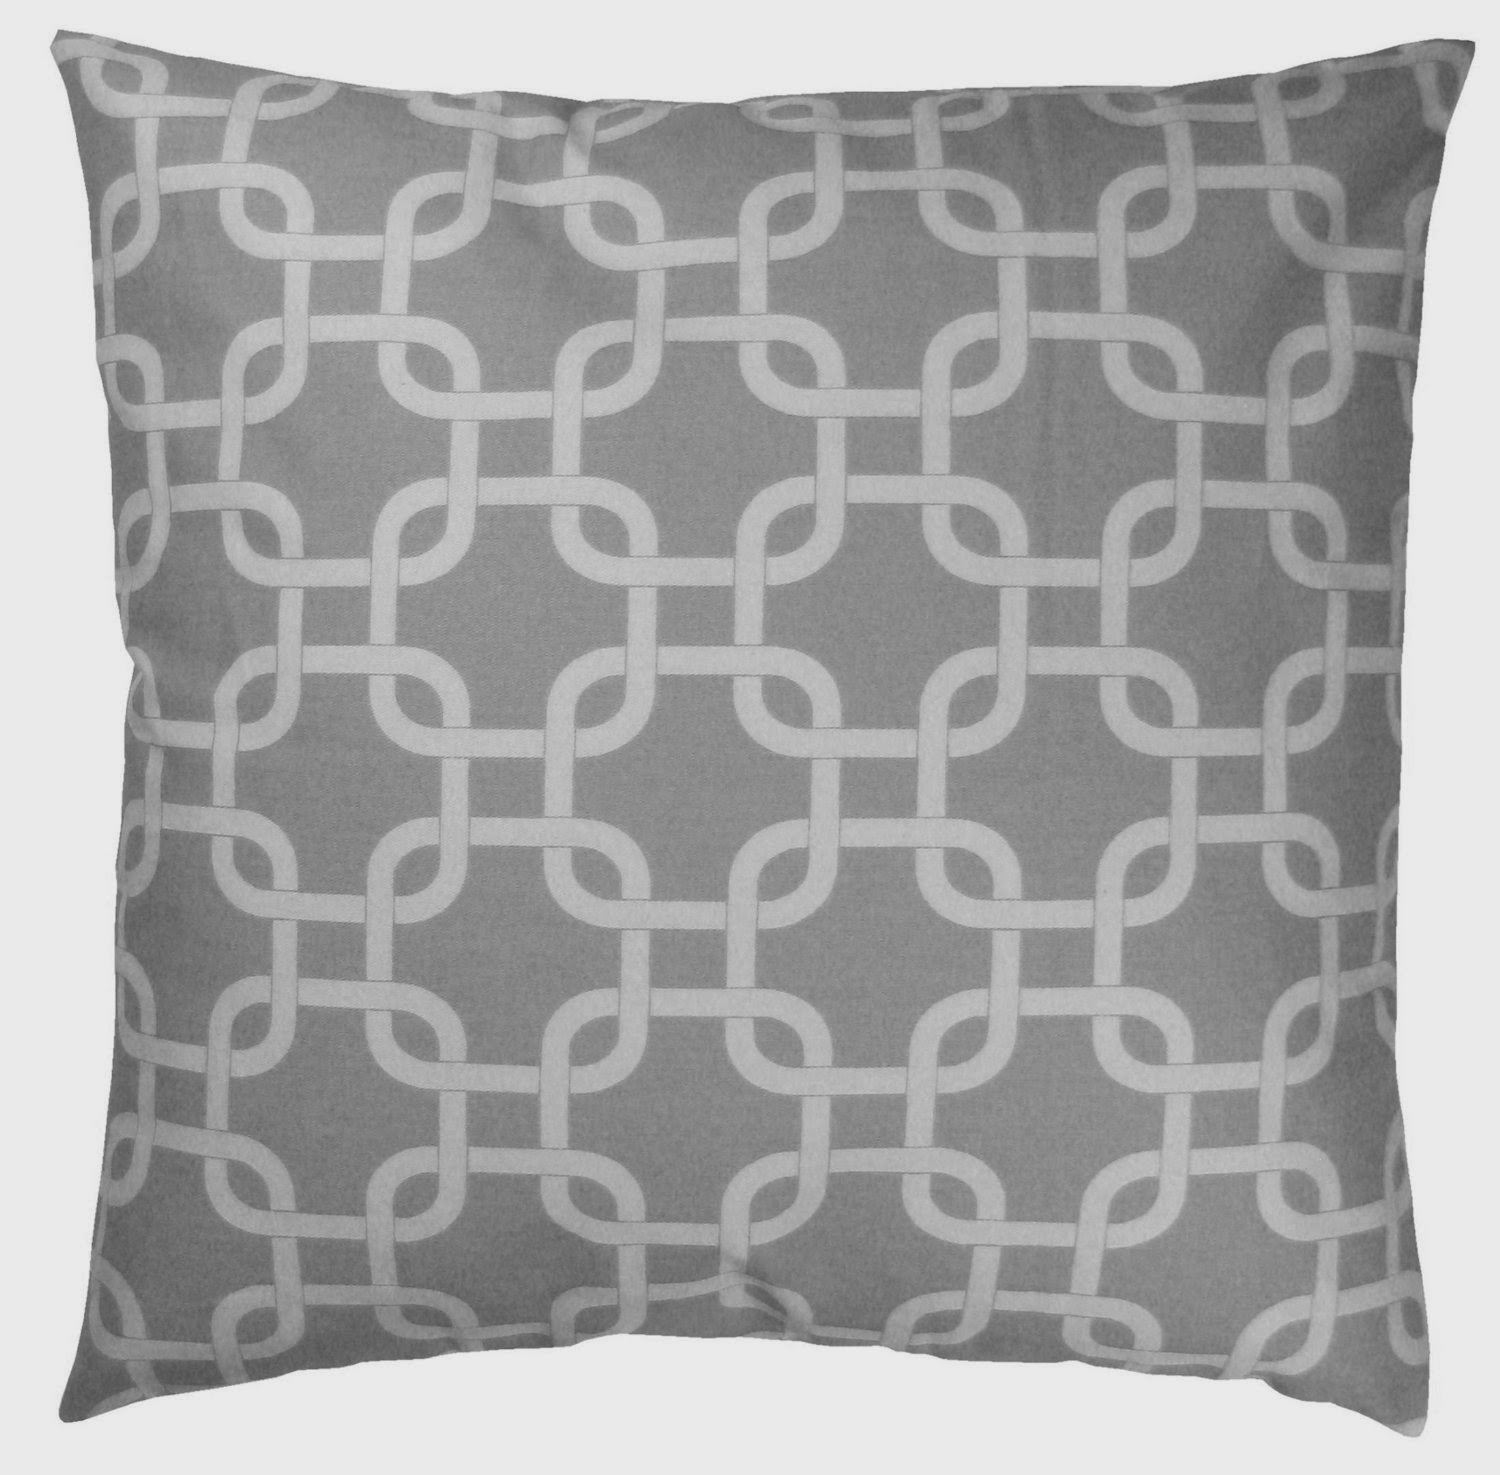 Decorative Throw Pillow Cover (Grey & White, Square, 1 Cushion Sham for 18 x 18 Inserts)